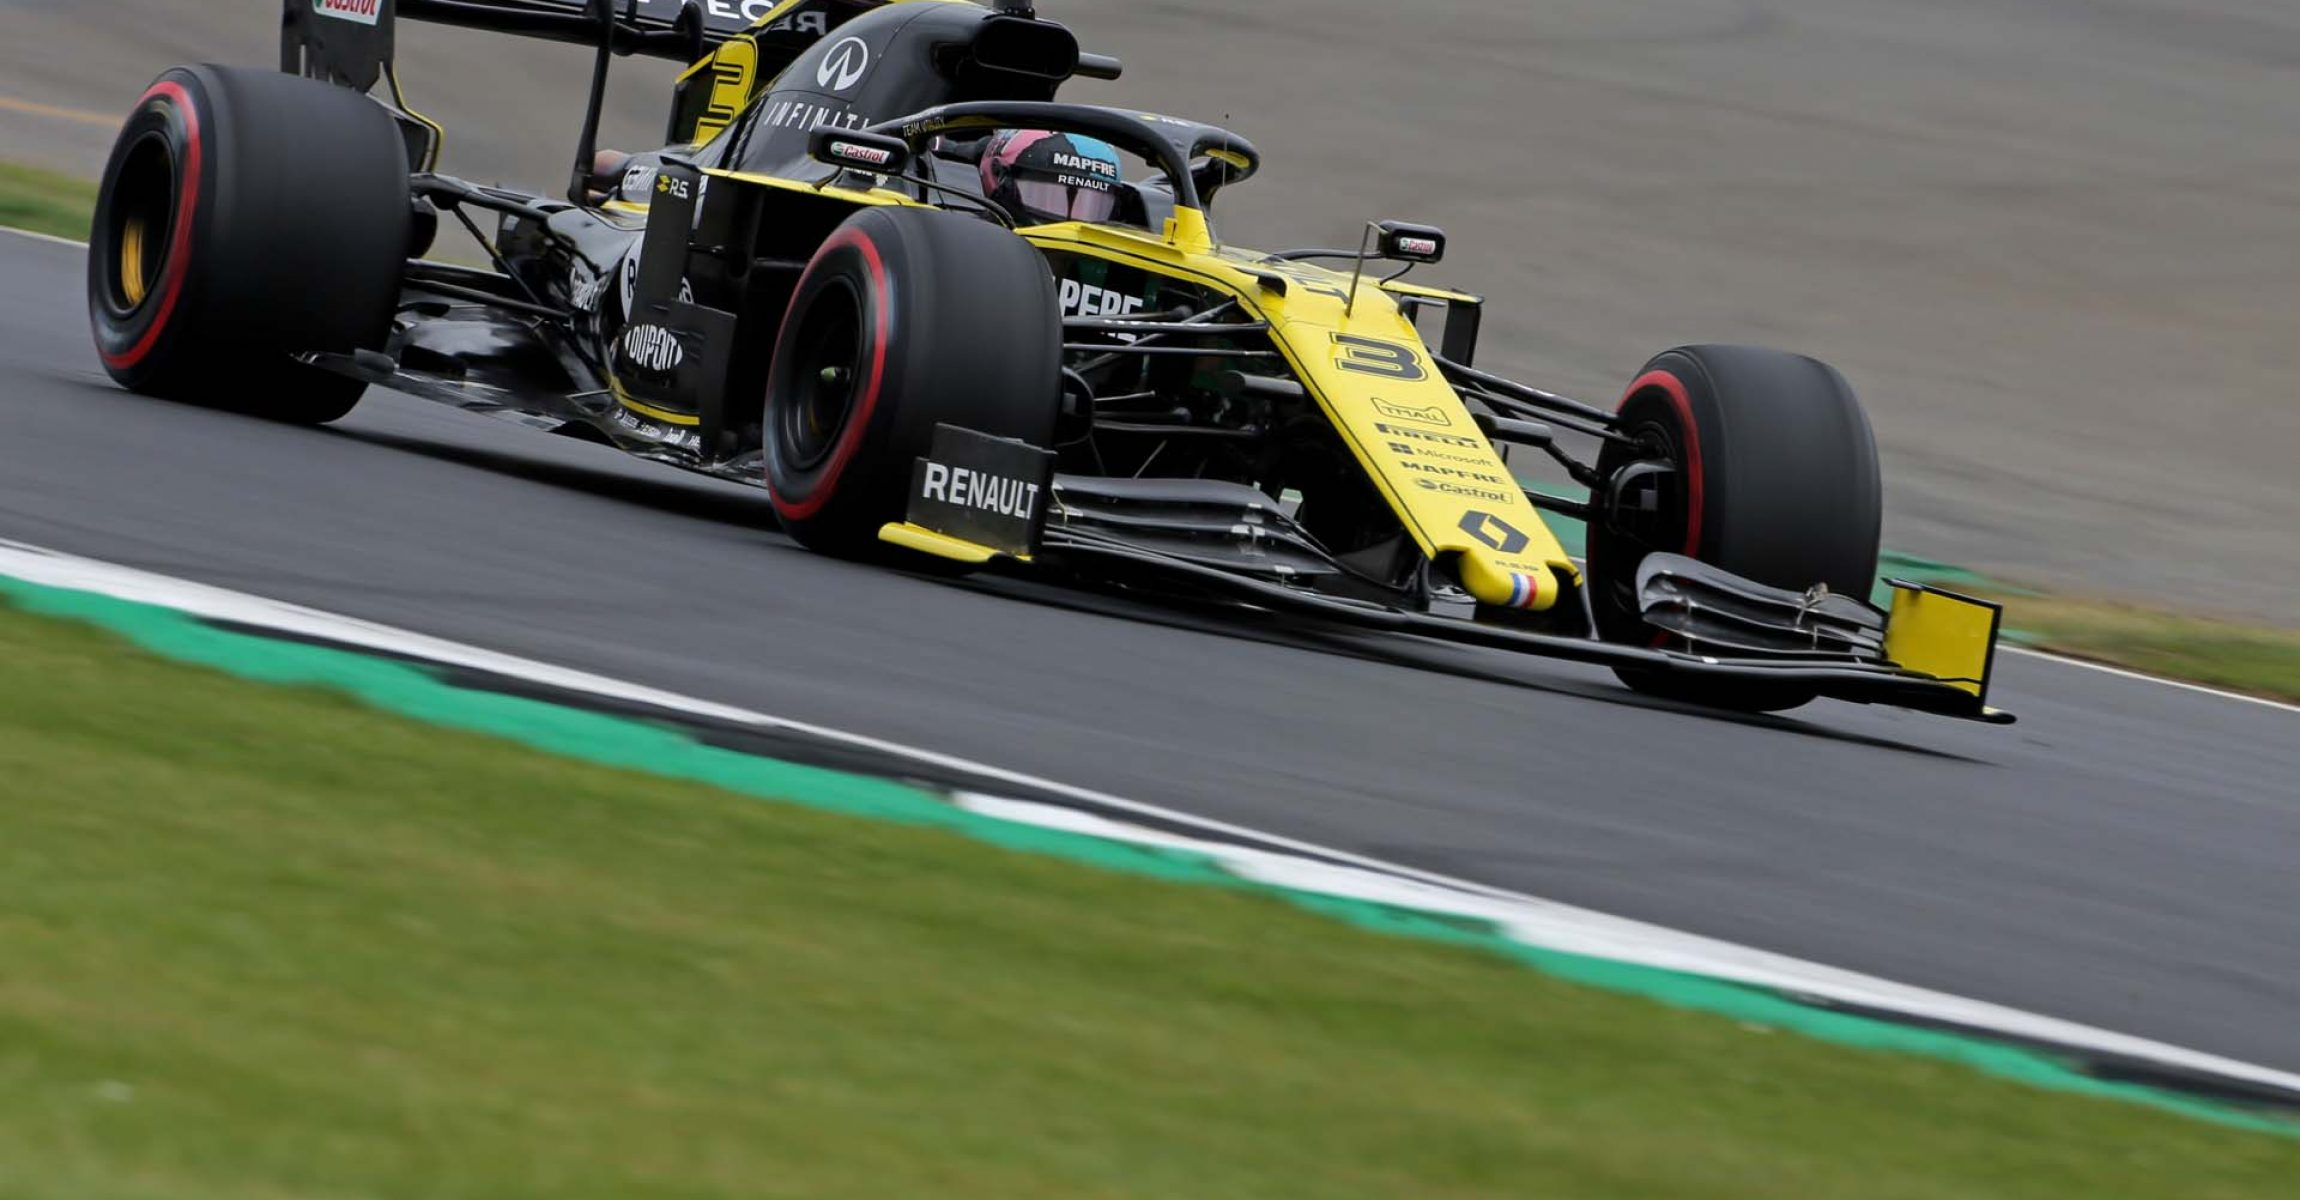 Daniel Ricciardo (AUS) Renault F1 Team RS19. British Grand Prix, Saturday 13th July 2019. Silverstone, England.